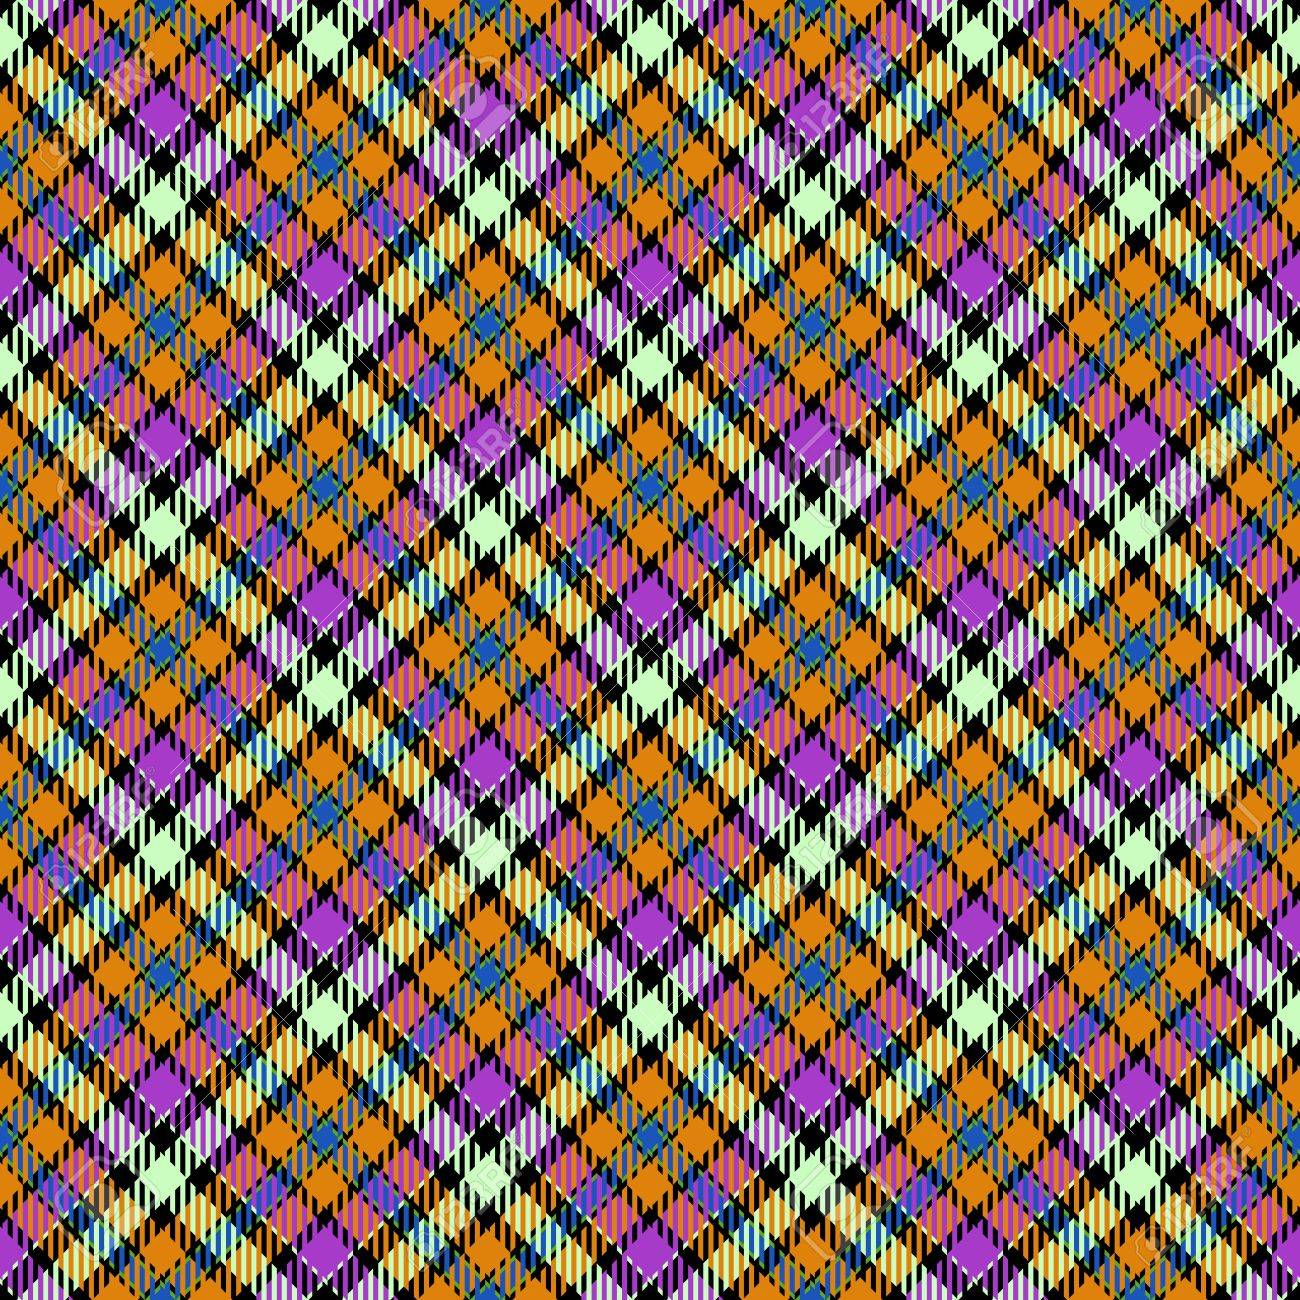 Bedspread designs texture - Striped Bedspread Abstract Diagonally Checkered Tartan Pattern Digitally Rendered Background With Textile Texture Usable